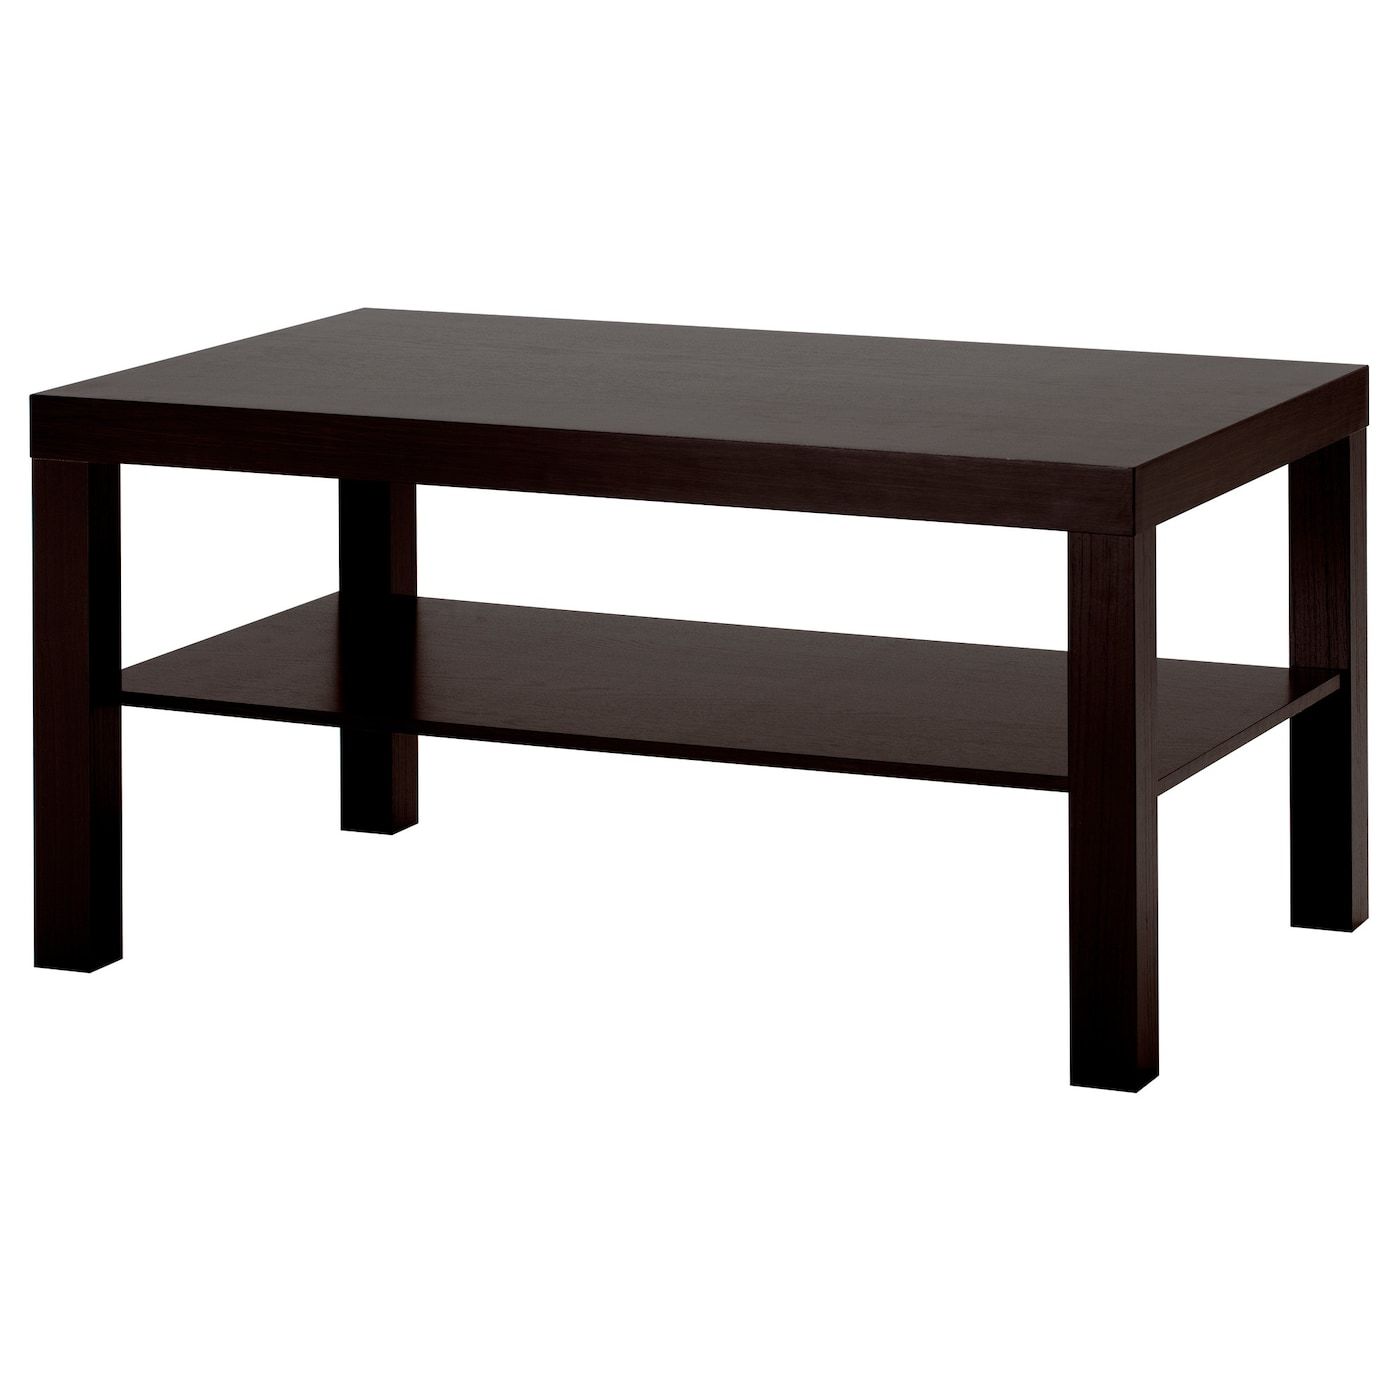 lack coffee table black brown 90x55 cm ikea. Black Bedroom Furniture Sets. Home Design Ideas